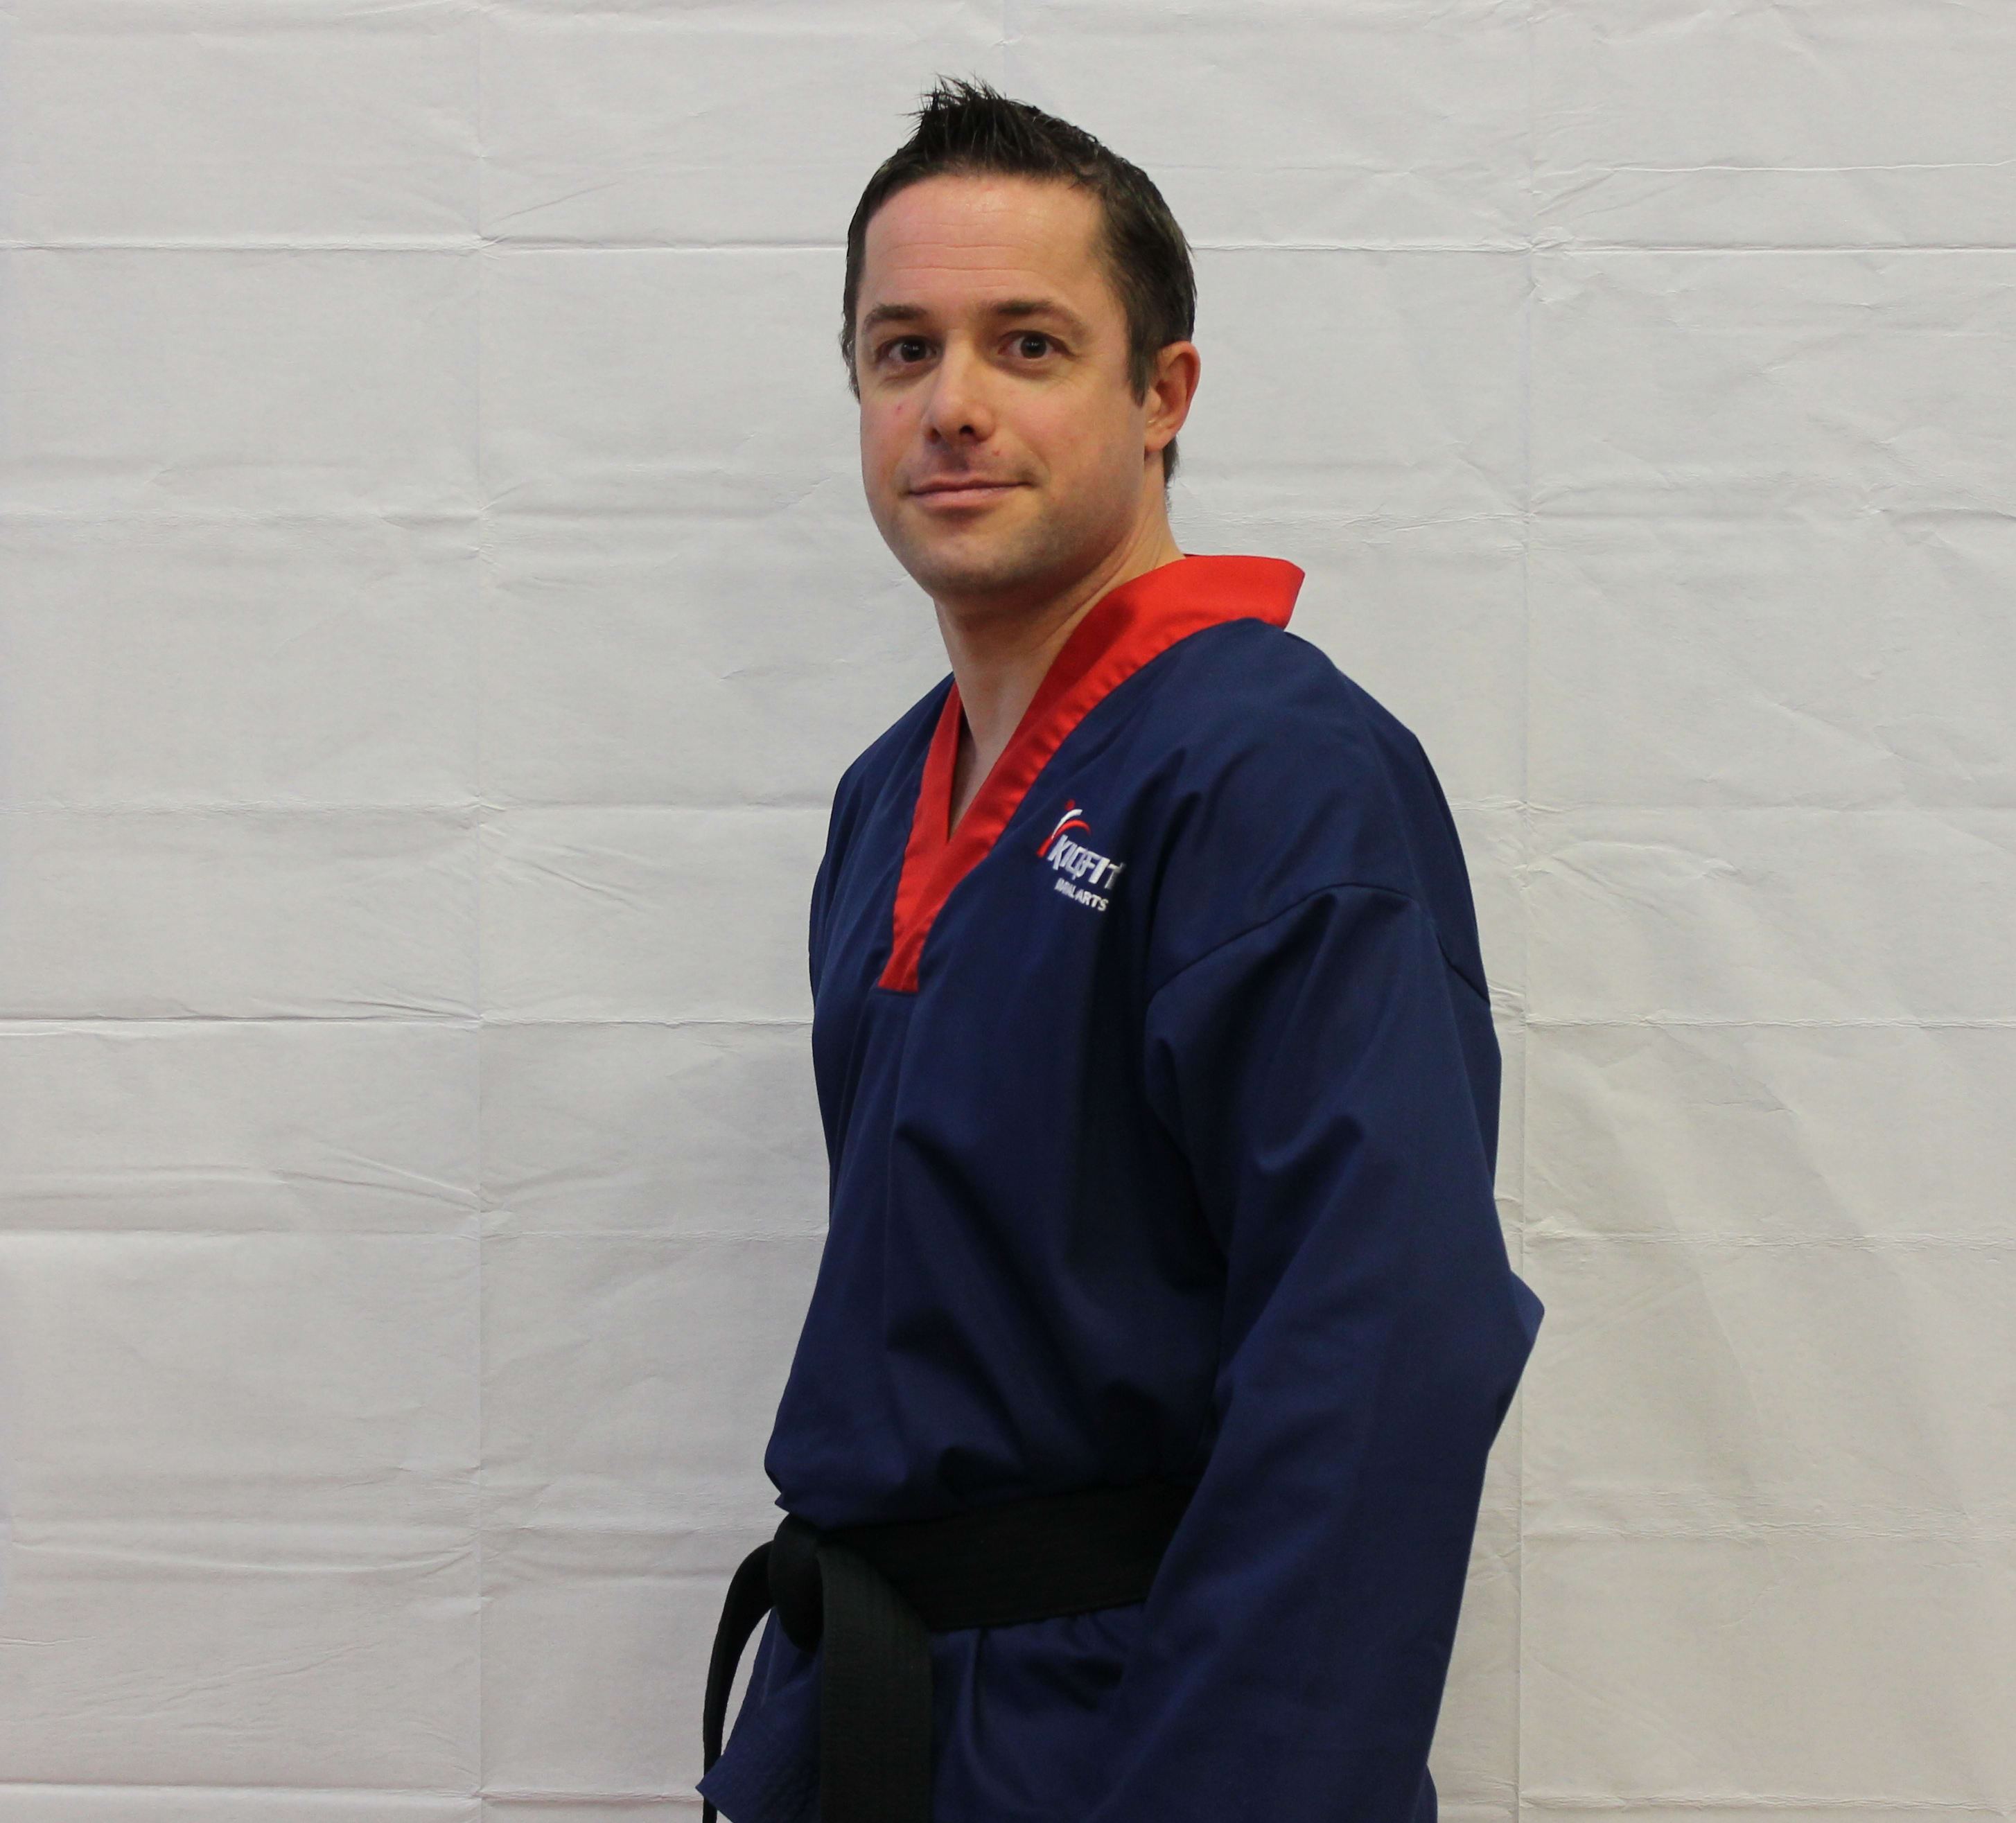 Mr Warwick in Slough - KickFit Martial Arts Slough